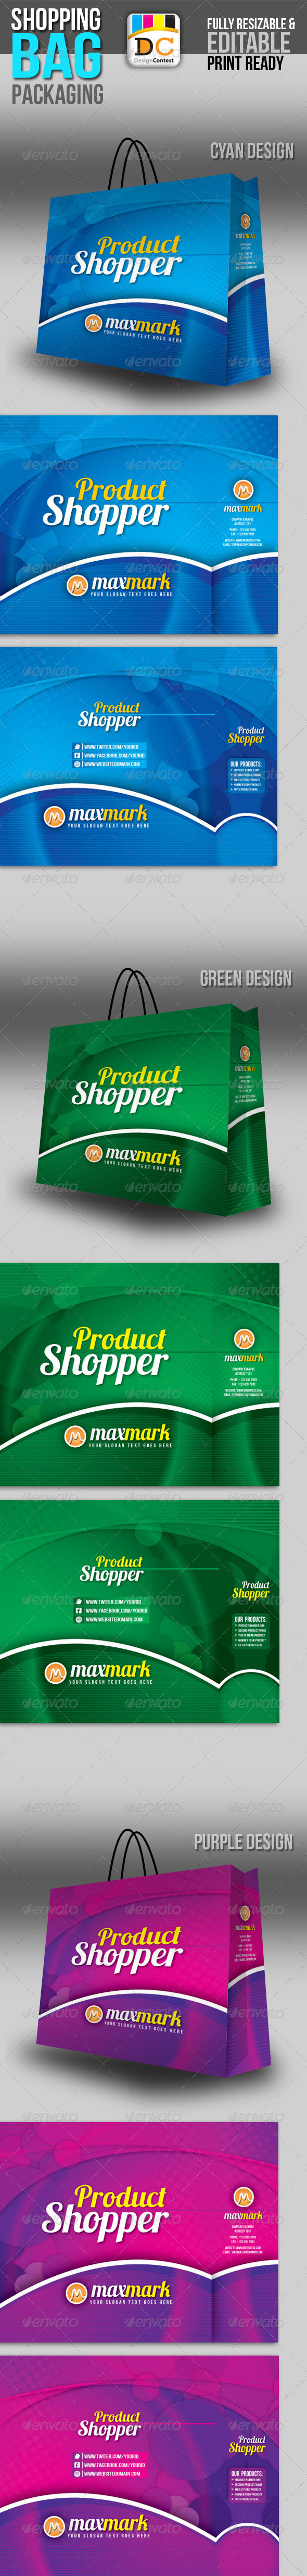 Max Mark Shopping Bag Packaging - Packaging Print Templates